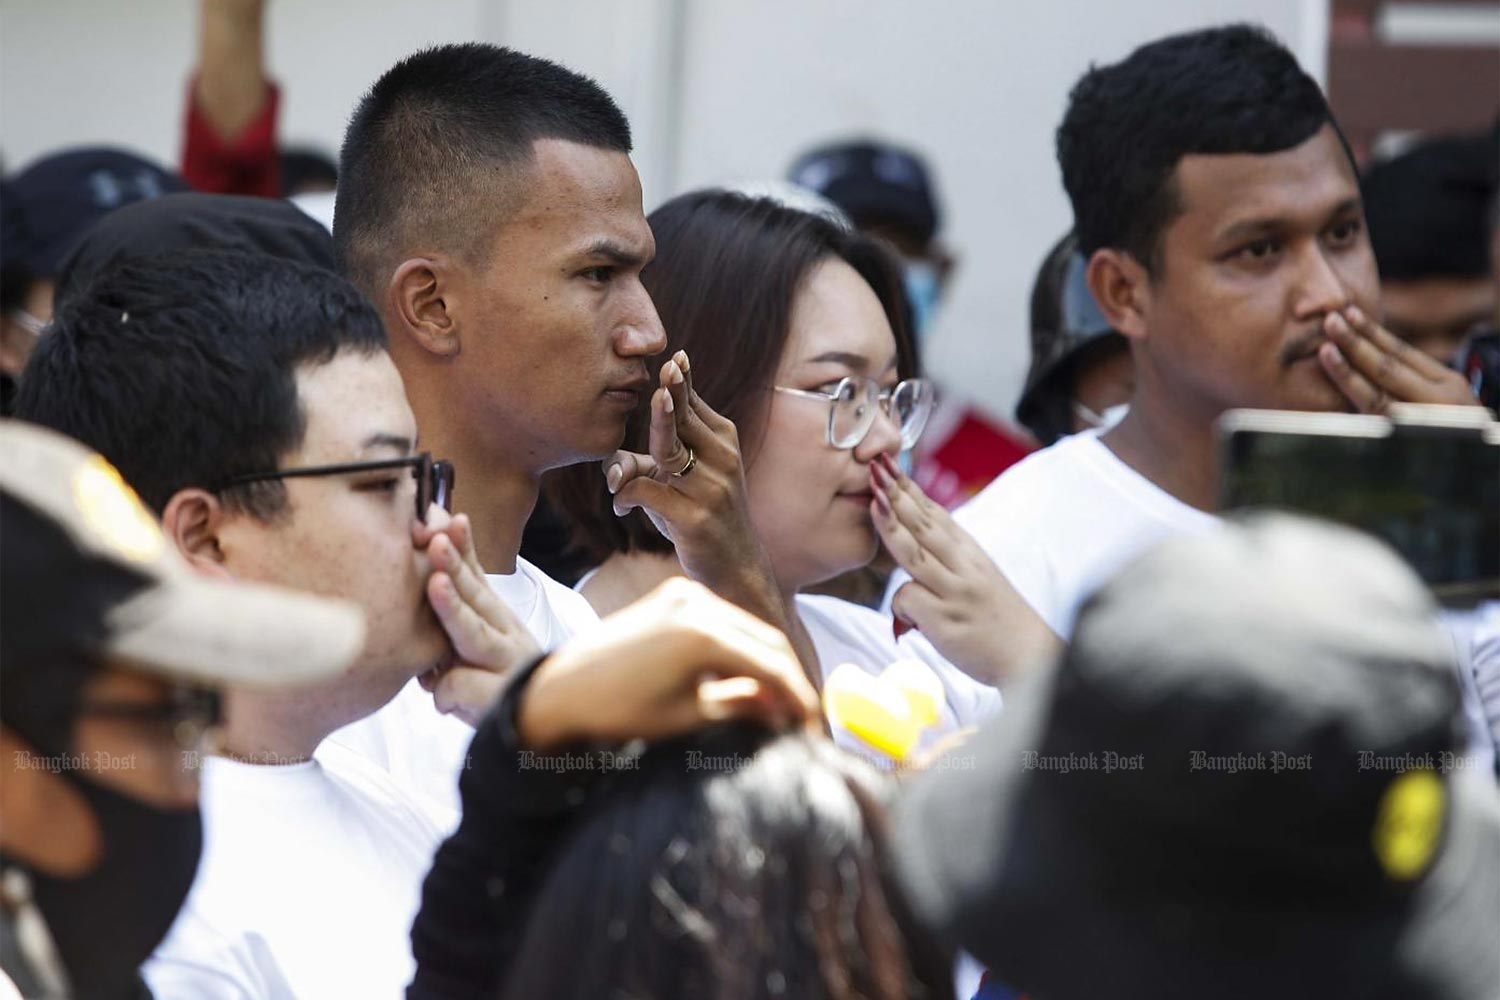 Protest leaders, Parit Chiwarak, left, Panupong Jadnok, Panusaya Sithijirawattanakul, and Chinnawat Chankrachang, right, cover their mouths to protest the violation of their freedom of expression as they report to Nonthaburi police station to hear lese majeste charges.(Photo by Pattarapong Chatpattarasill)